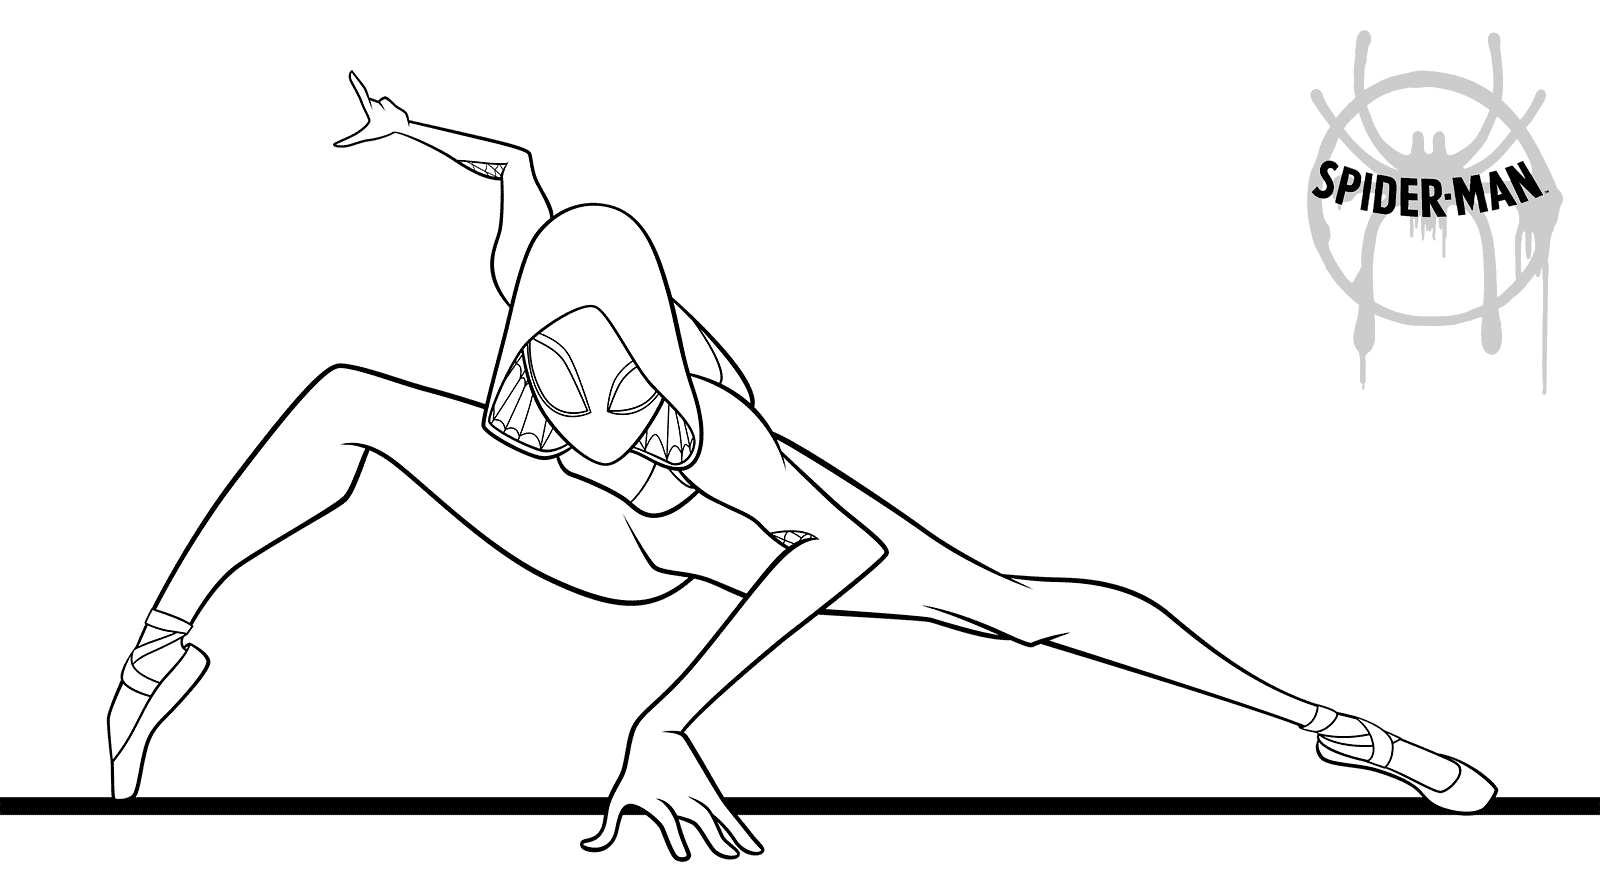 Spider Girl Coloring Page Coloring Pages Coloring Pages For Girls Spider Girl